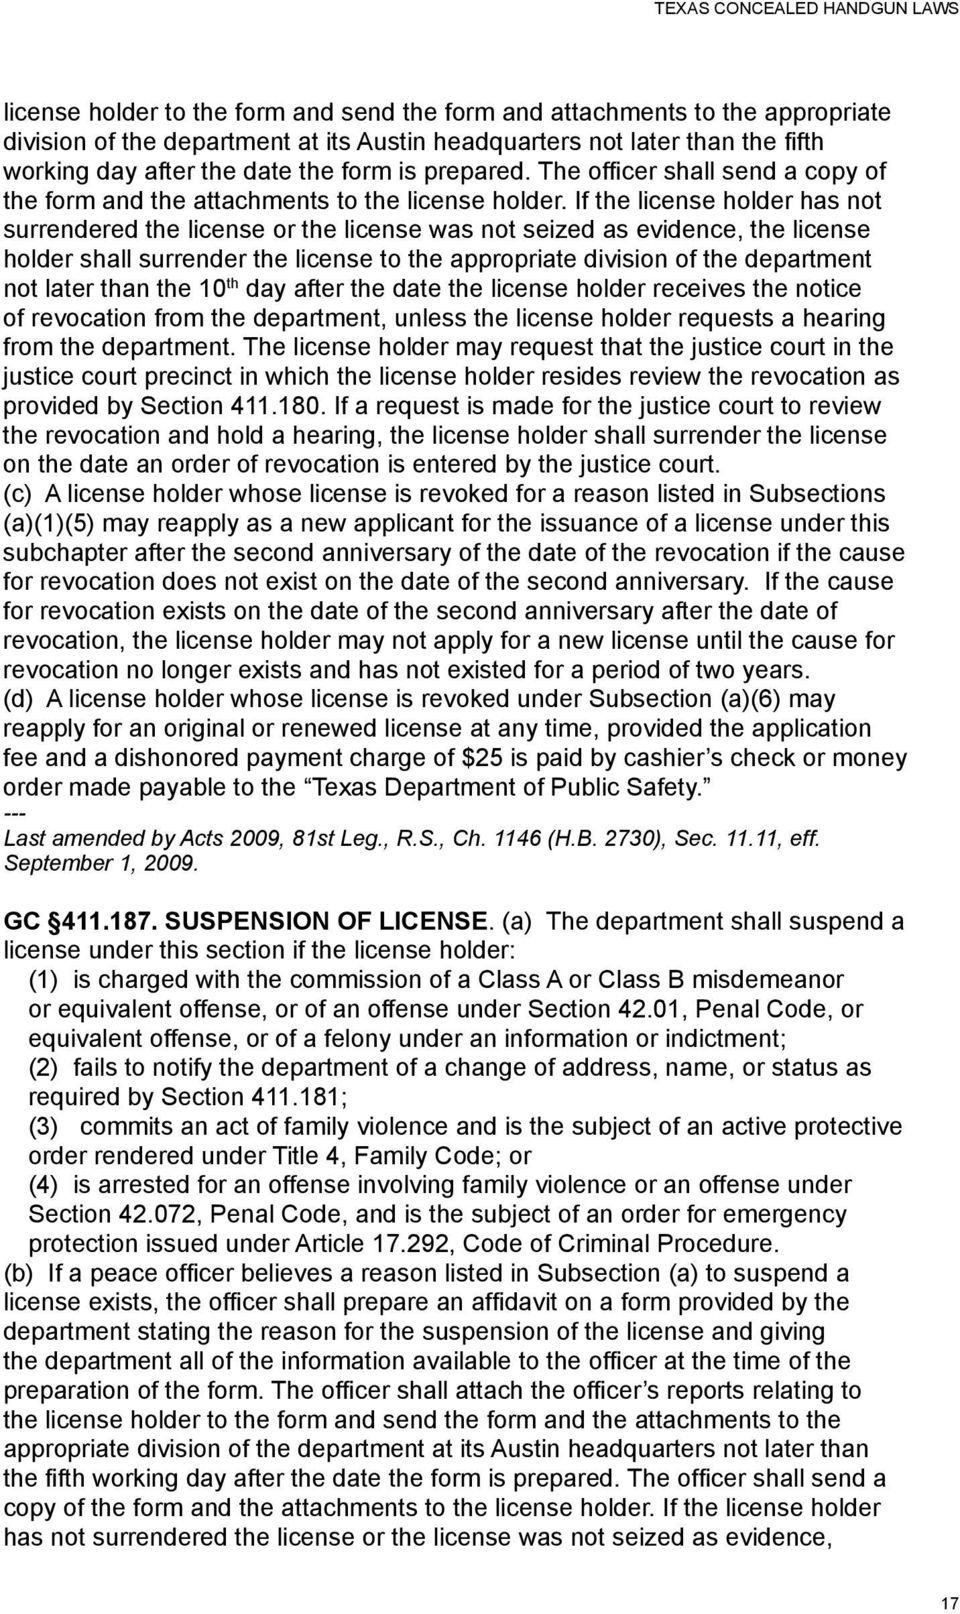 If the license holder has not surrendered the license or the license was not seized as evidence, the license holder shall surrender the license to the appropriate division of the department not later